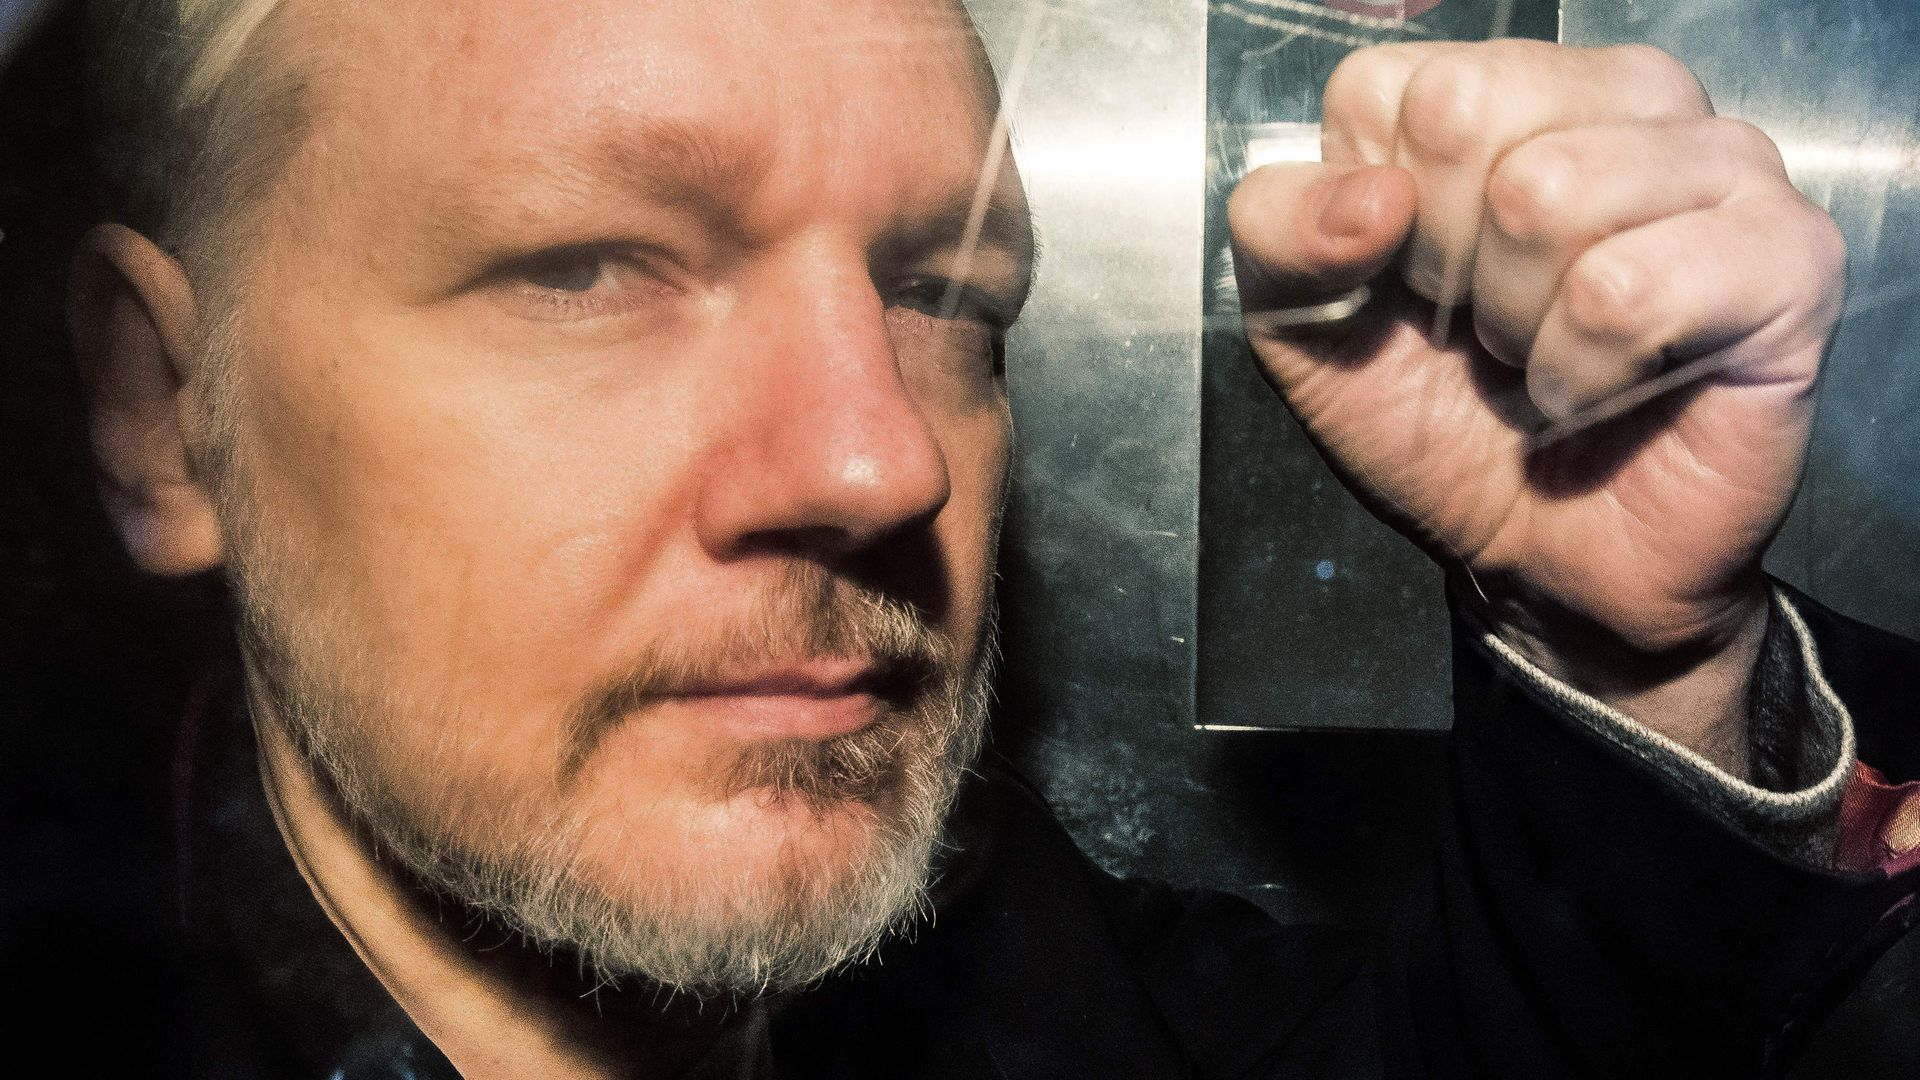 Julian Assange holding up a fist while looking into the camera.